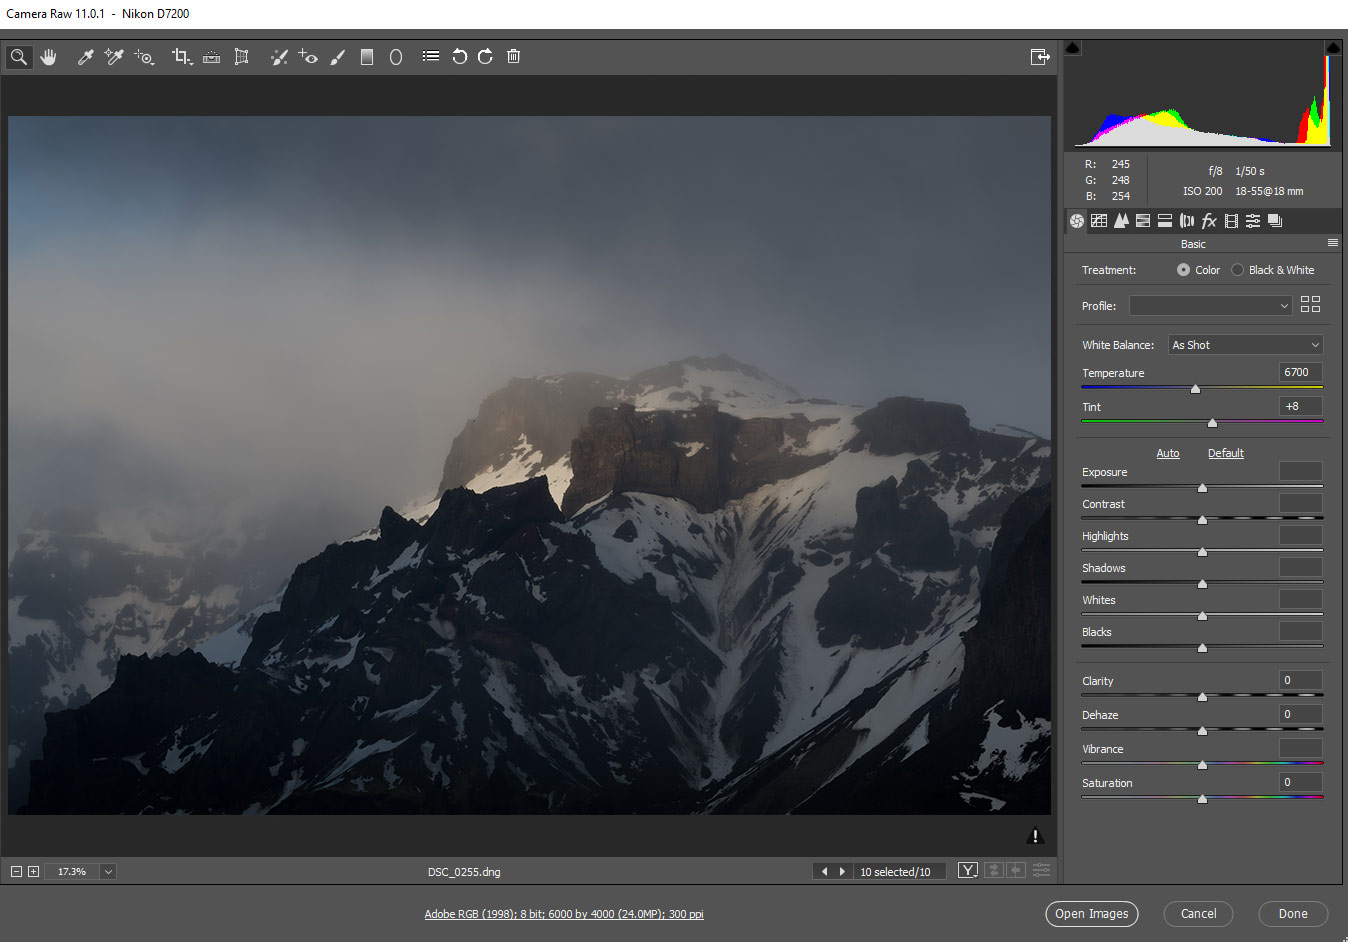 Adobe Camera RAW Presets in Photoshop